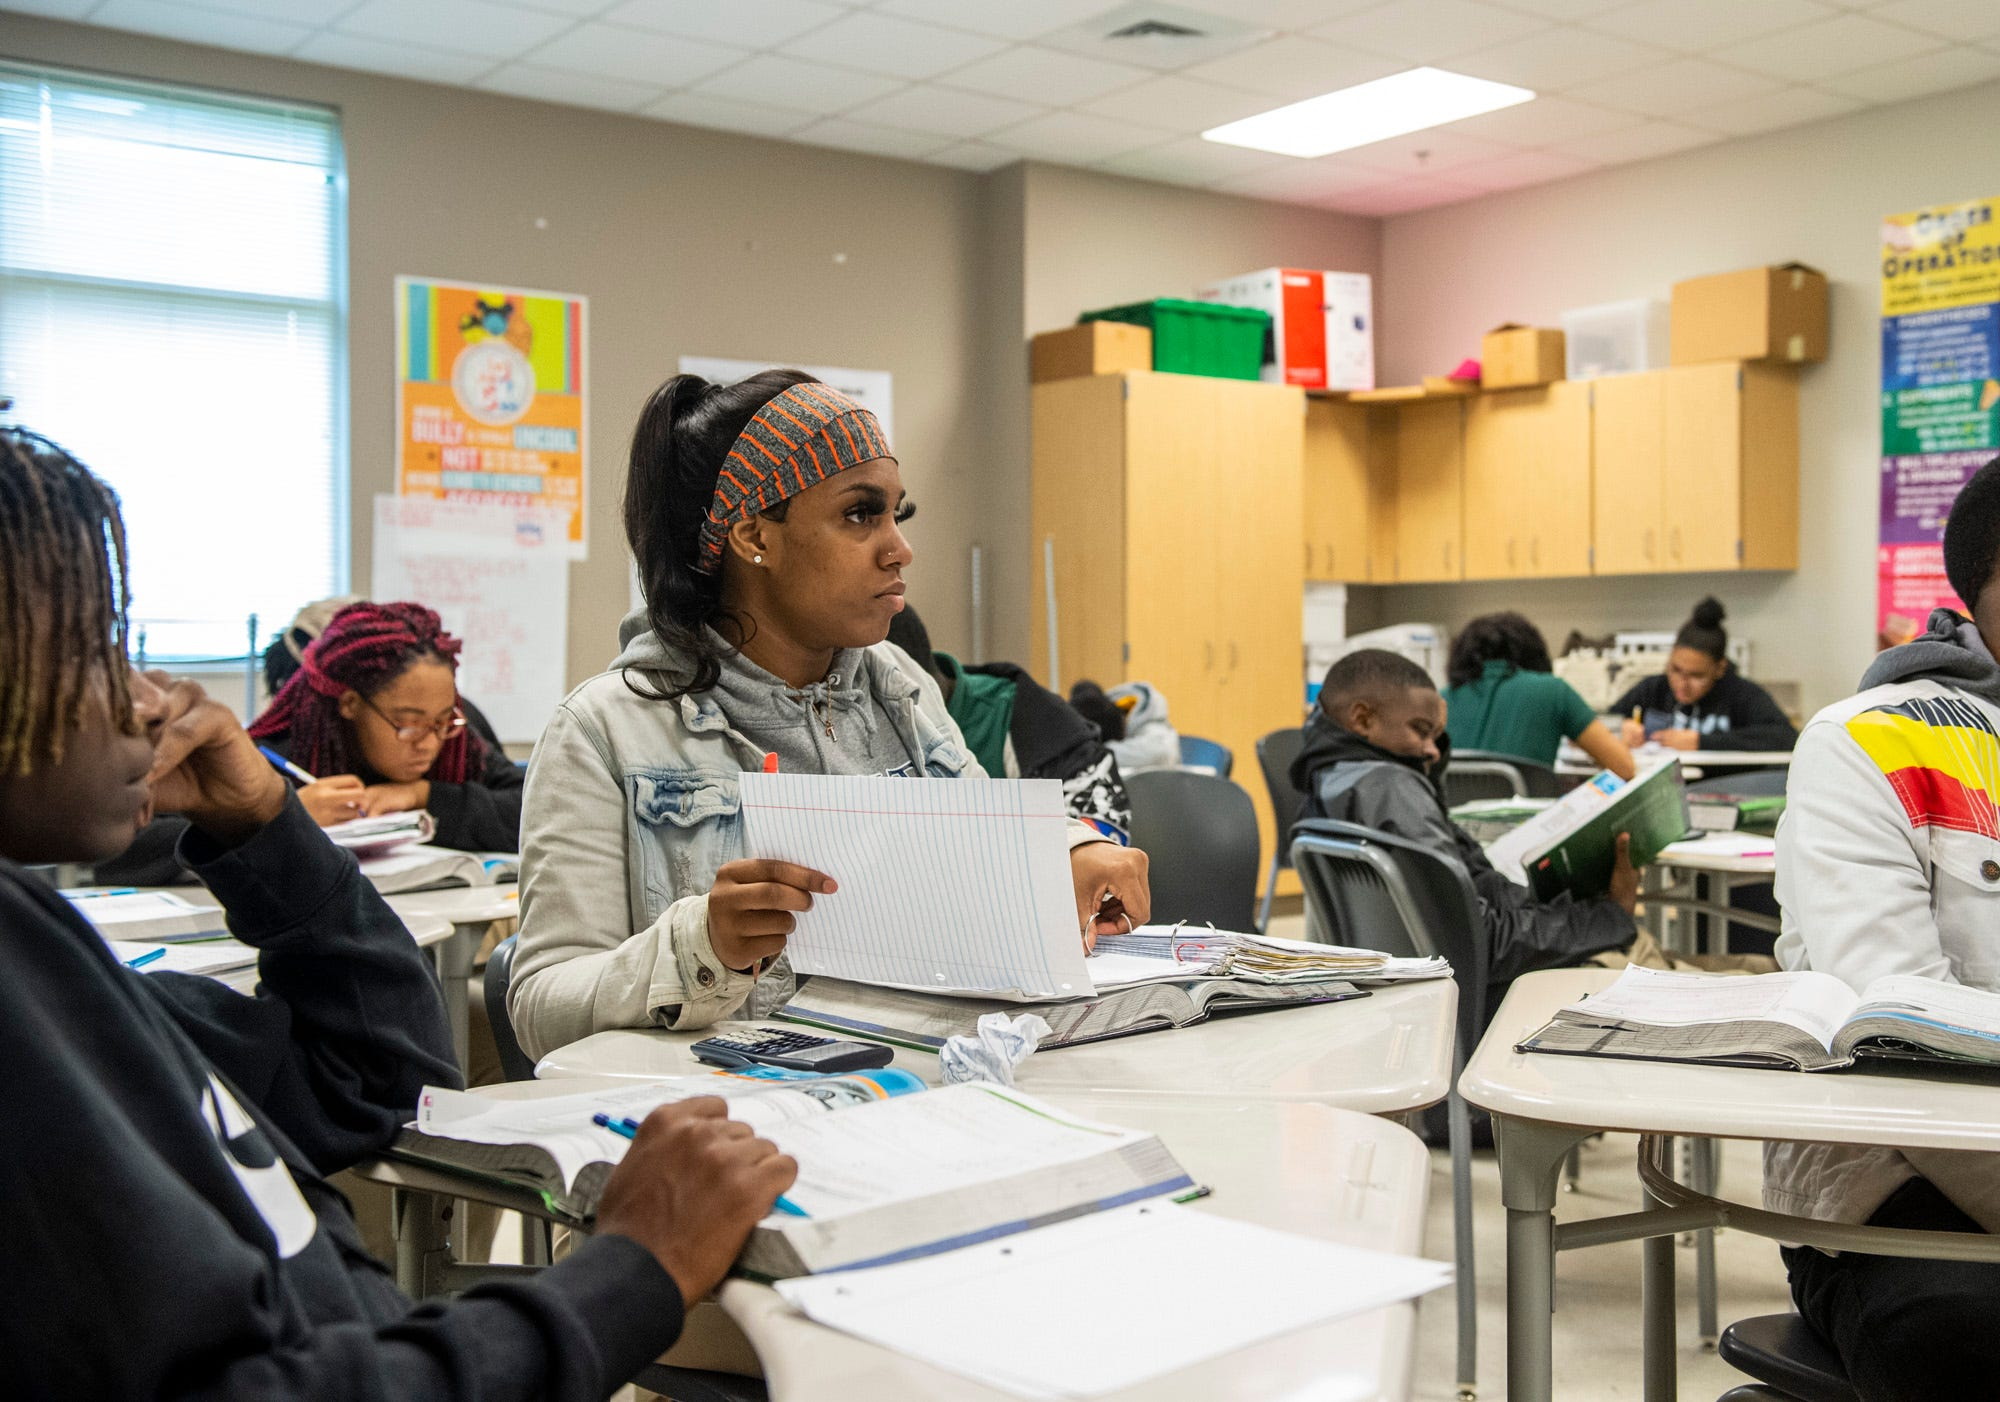 Helen Brown takes notes in math class at Carver High School in Montgomery, Ala., on Tuesday, Feb. 25, 2020.